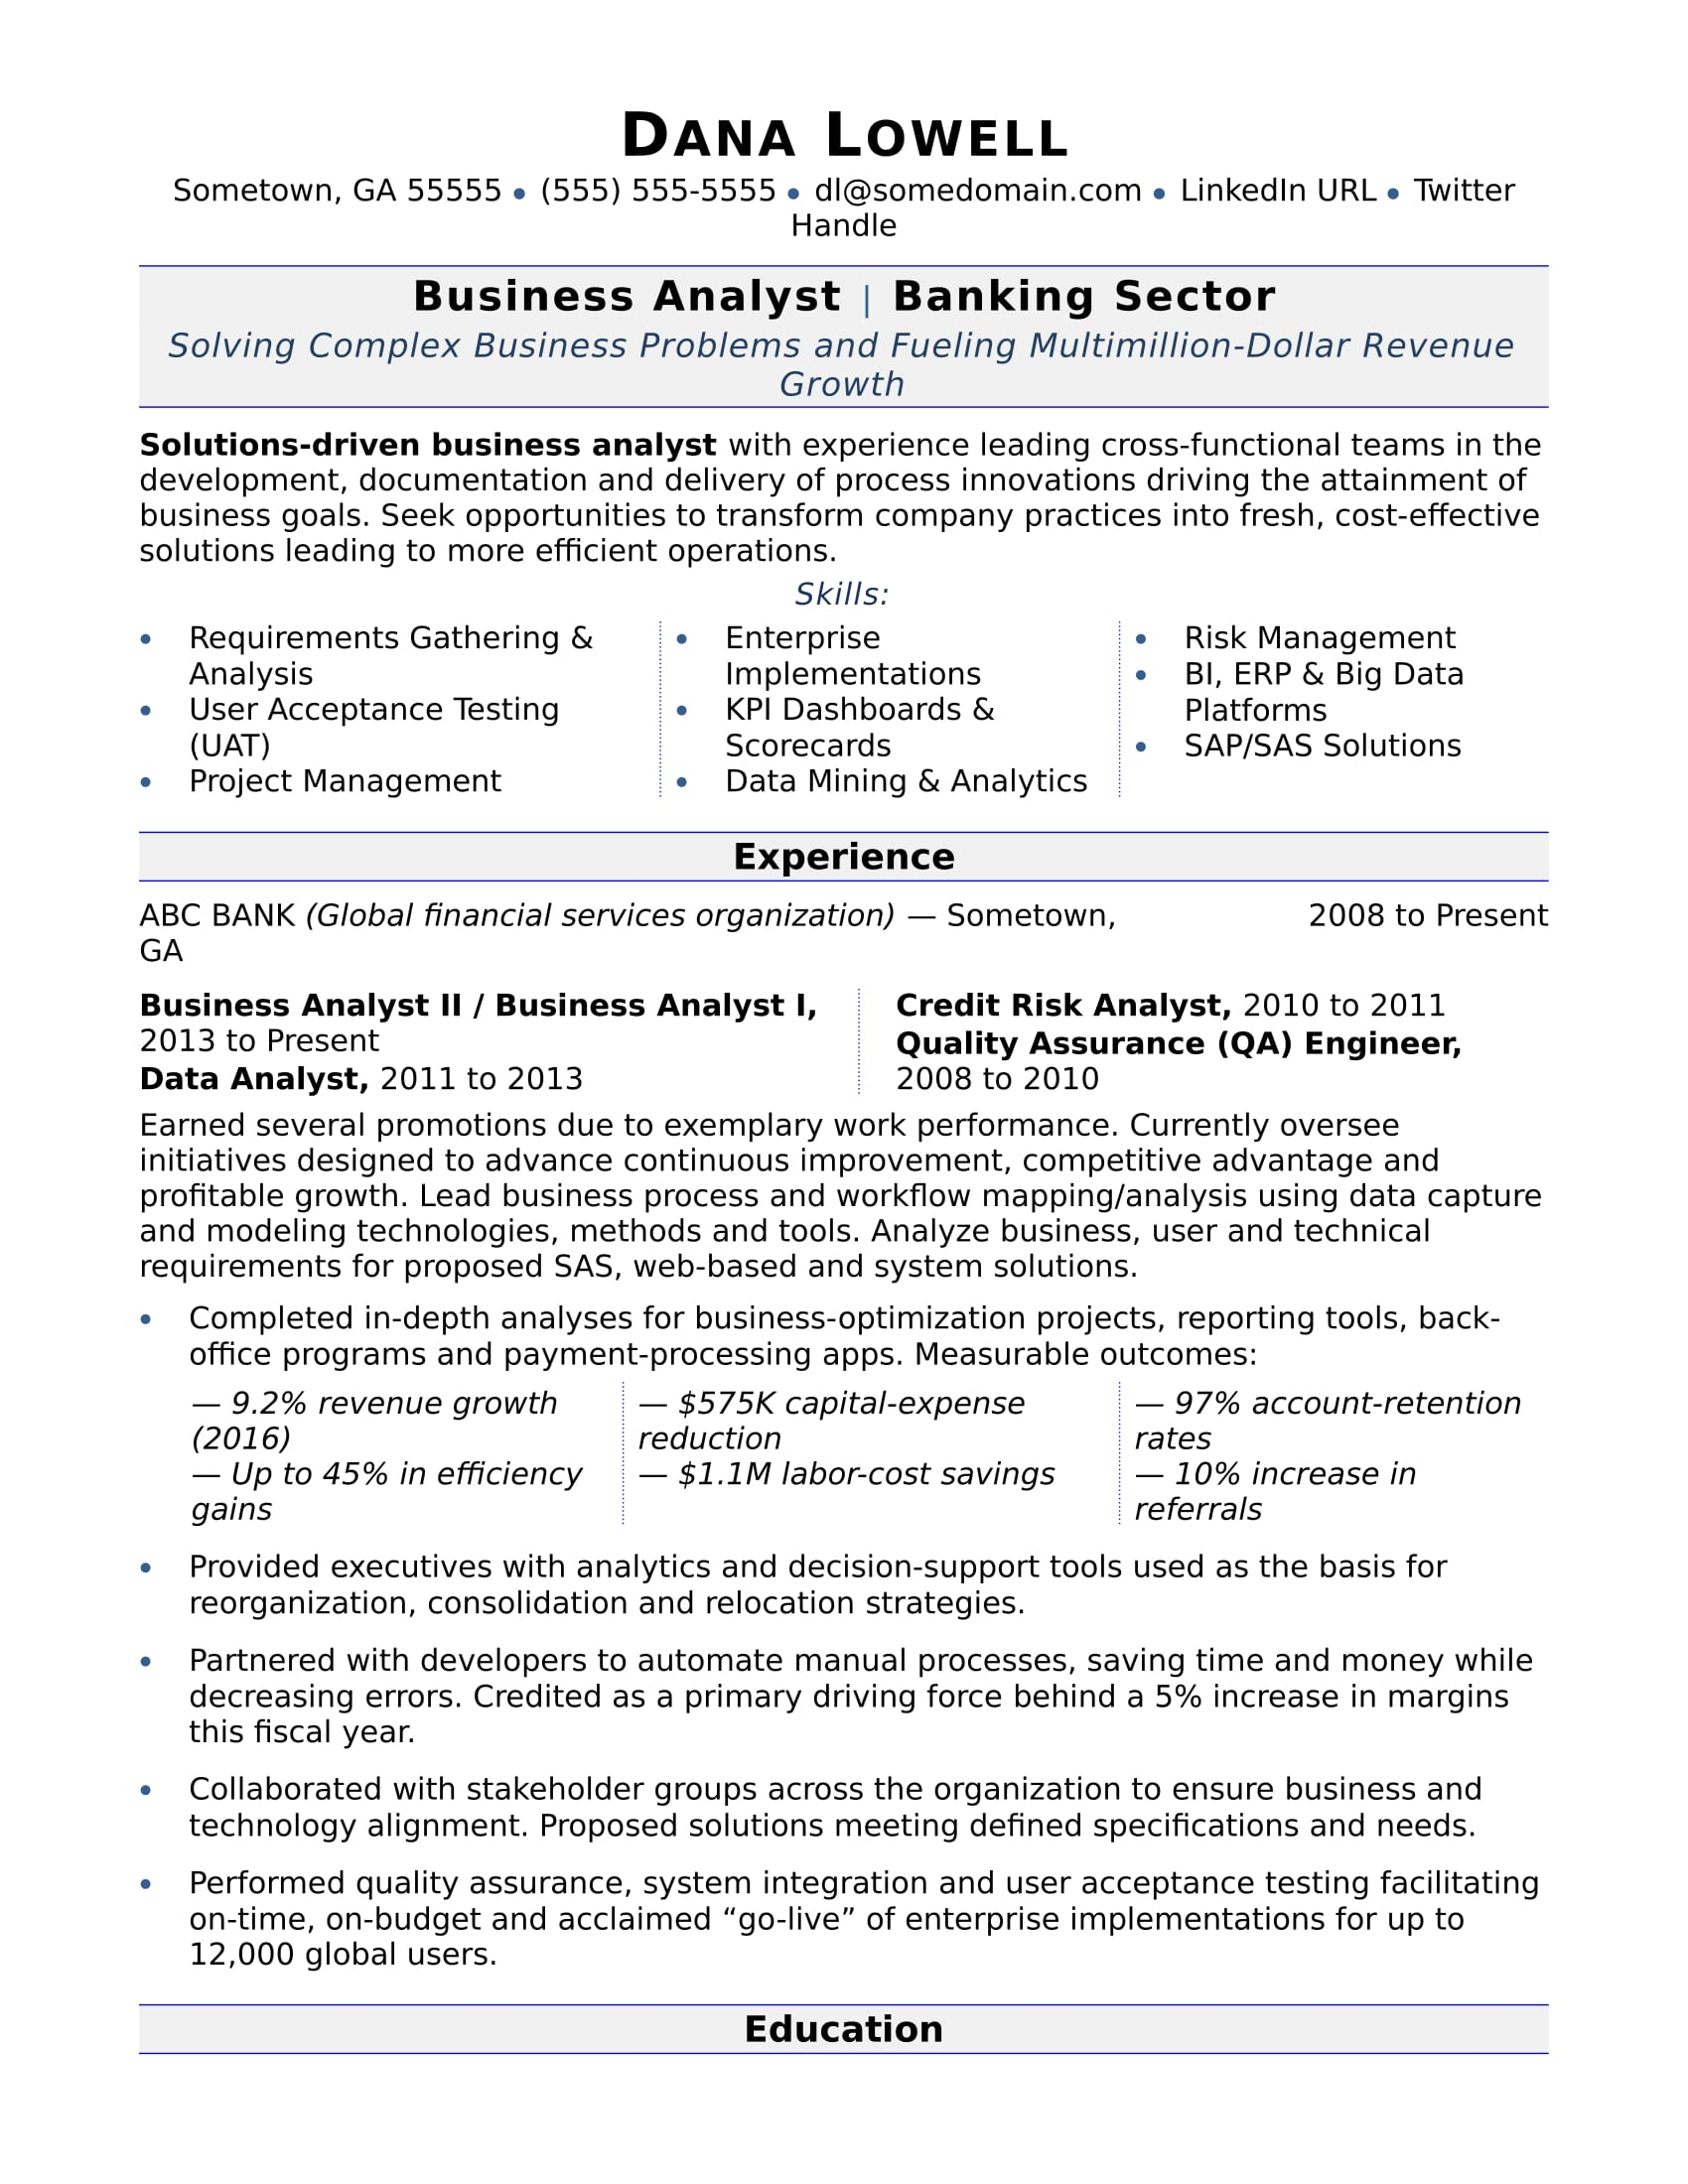 Business analyst resume sample monster business analyst resume sample friedricerecipe